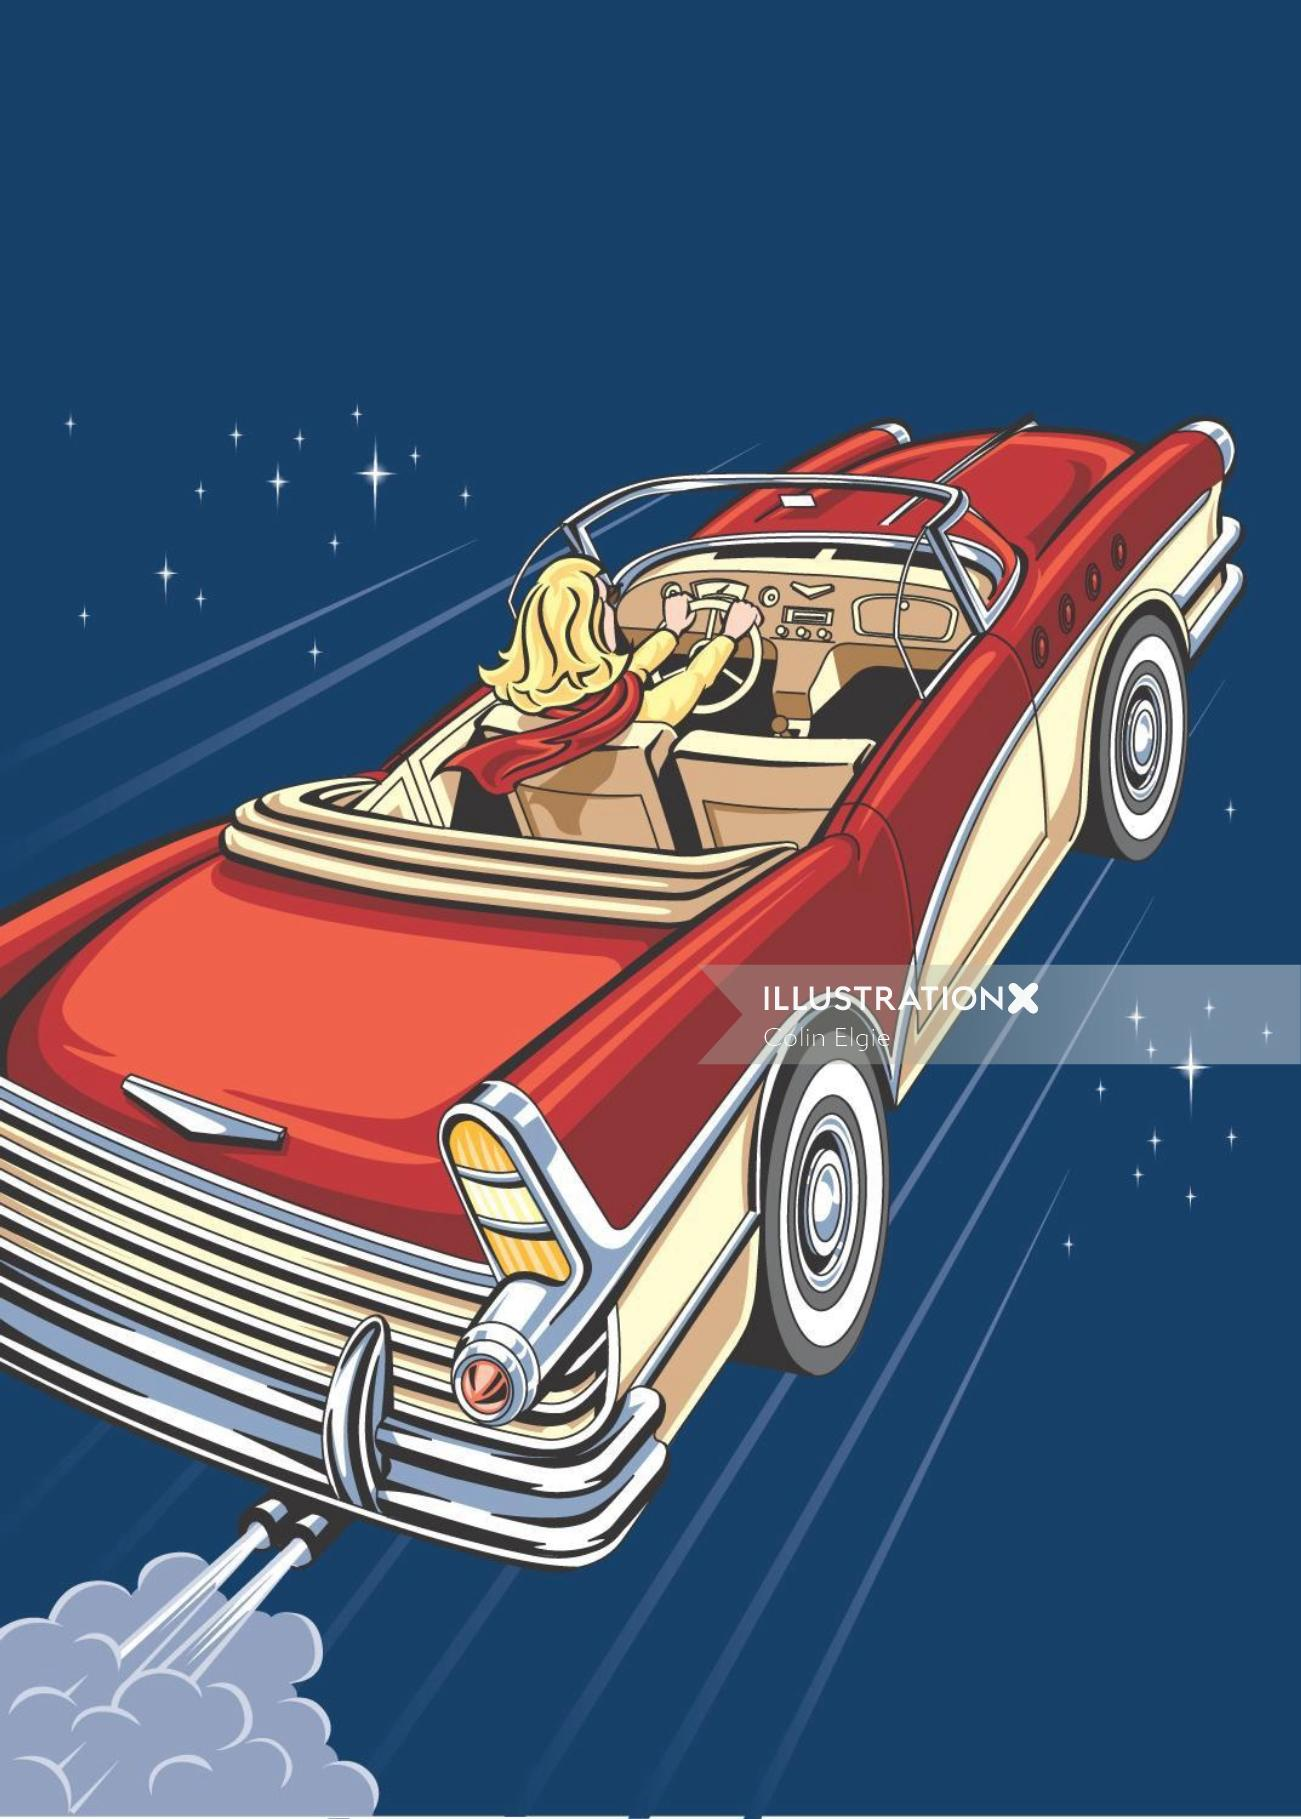 Woman riding car illustration by Colin Elgie